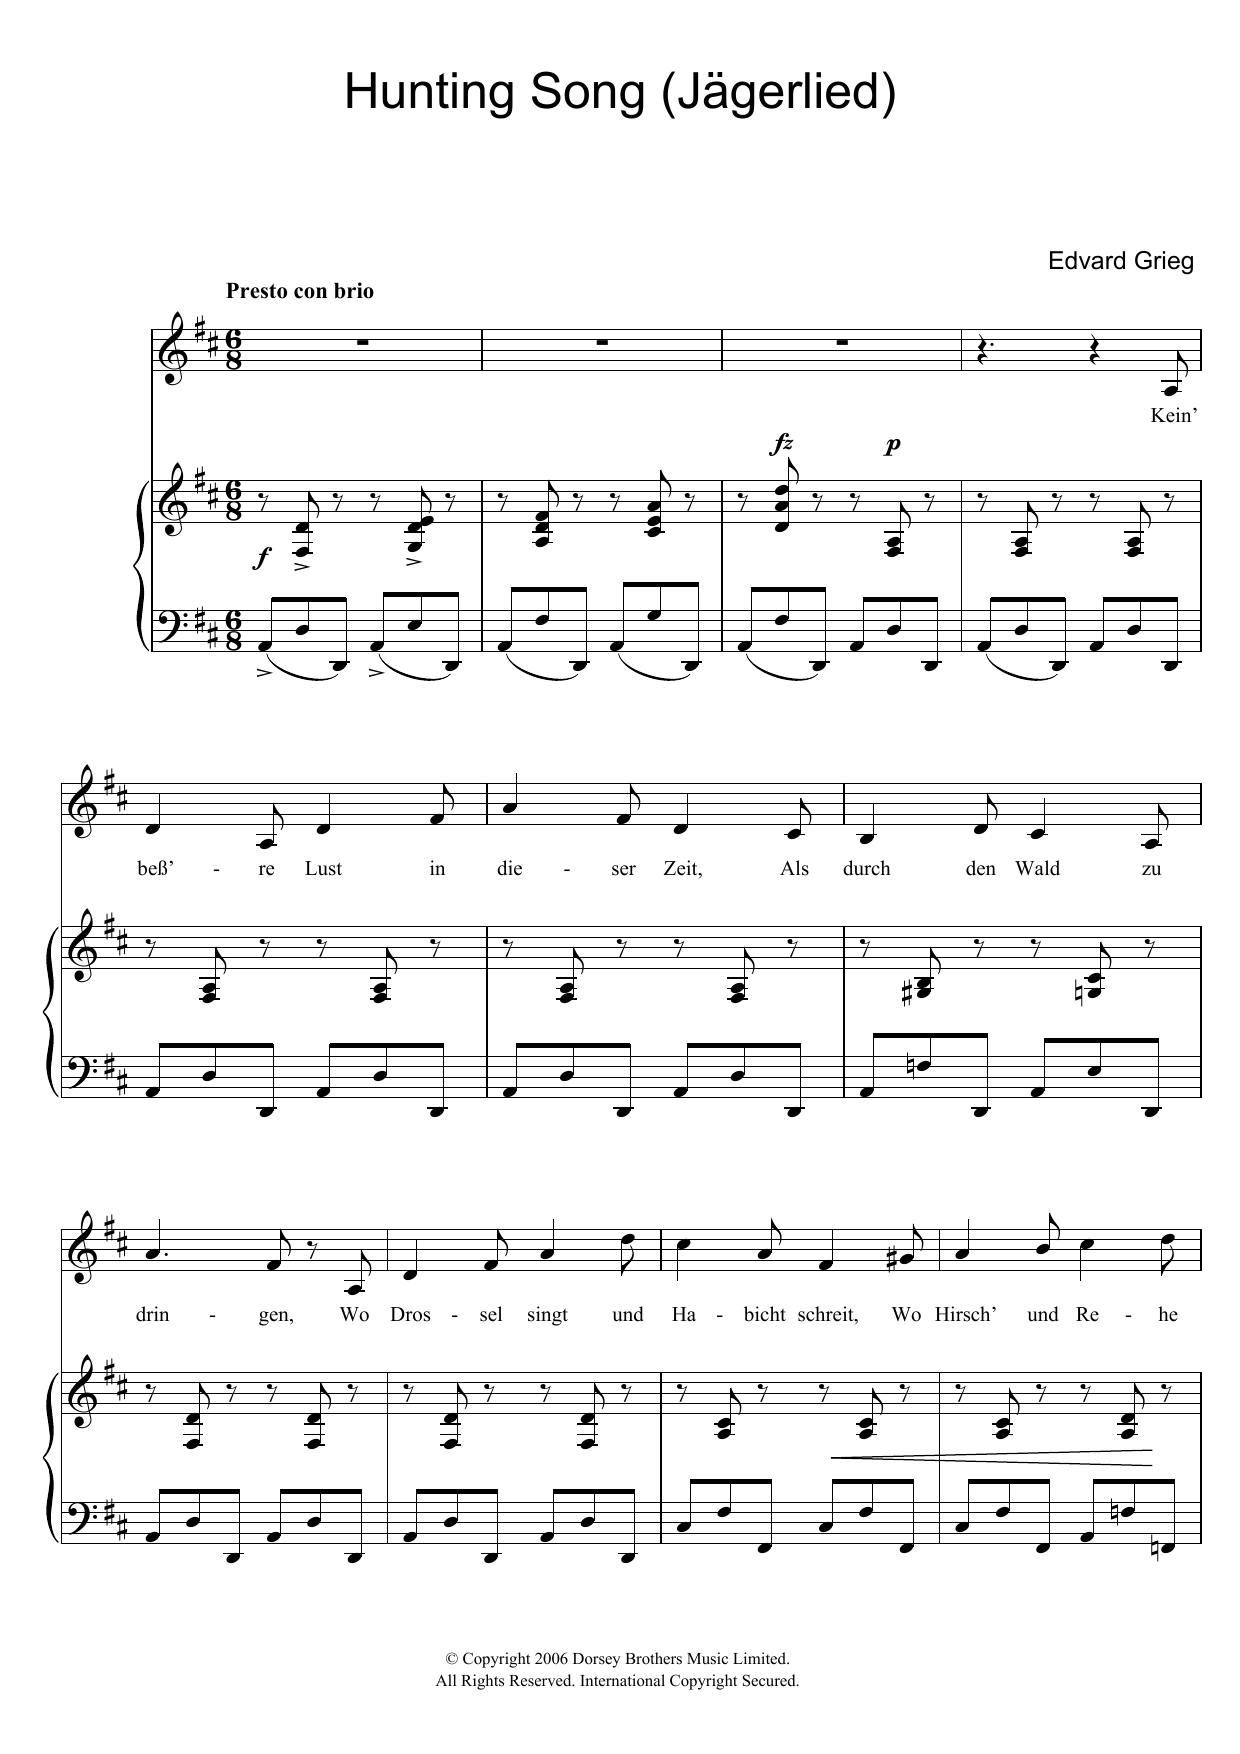 Hunting Song (Jagerlied) Sheet Music